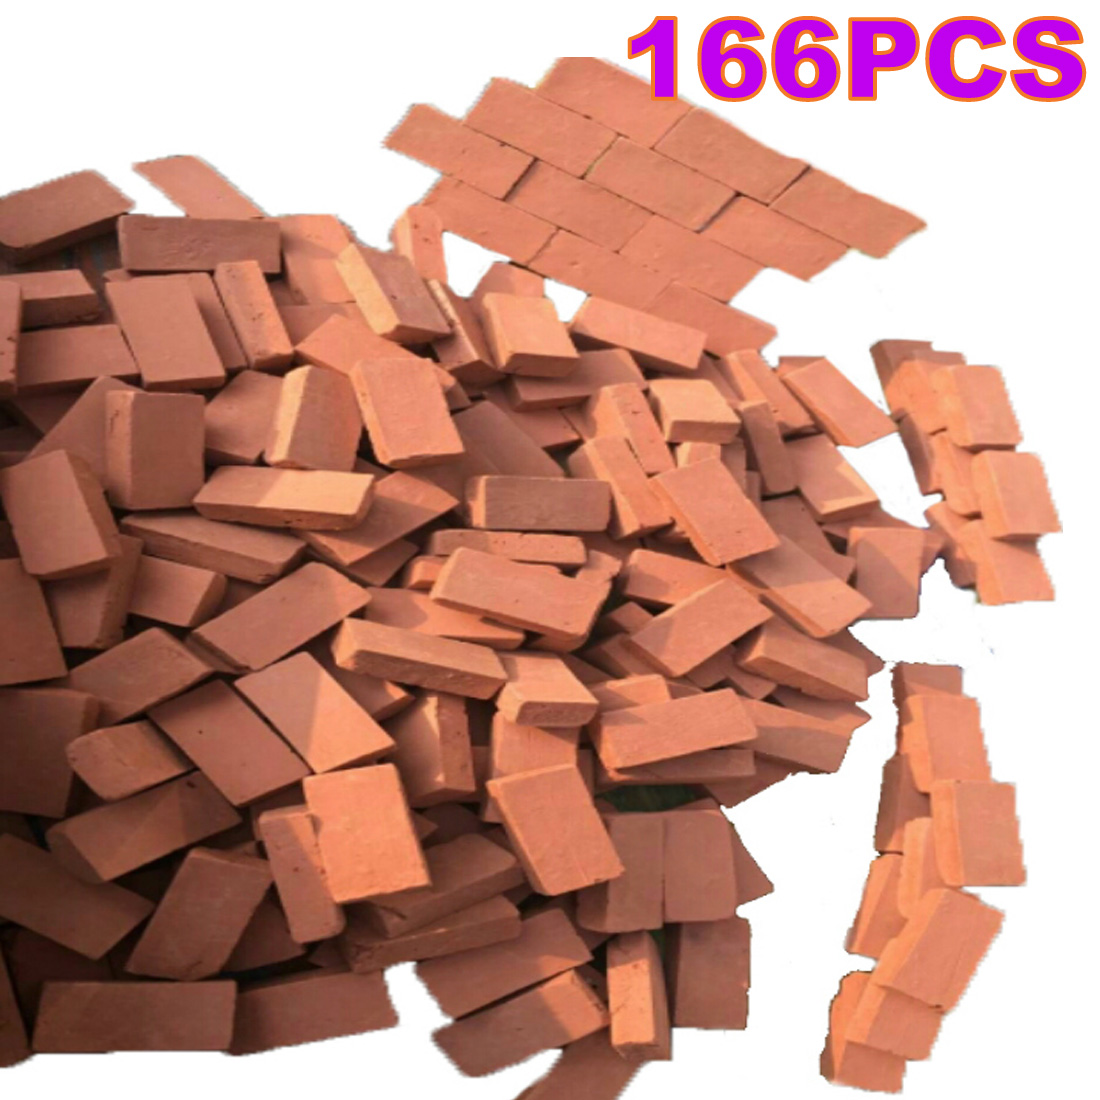 50/166Pcs 1:16 Scale Mini Red Bricks Model Antique Micro Landscape Decorative Bricks For DIY WWII Sand Table Building Orange Red